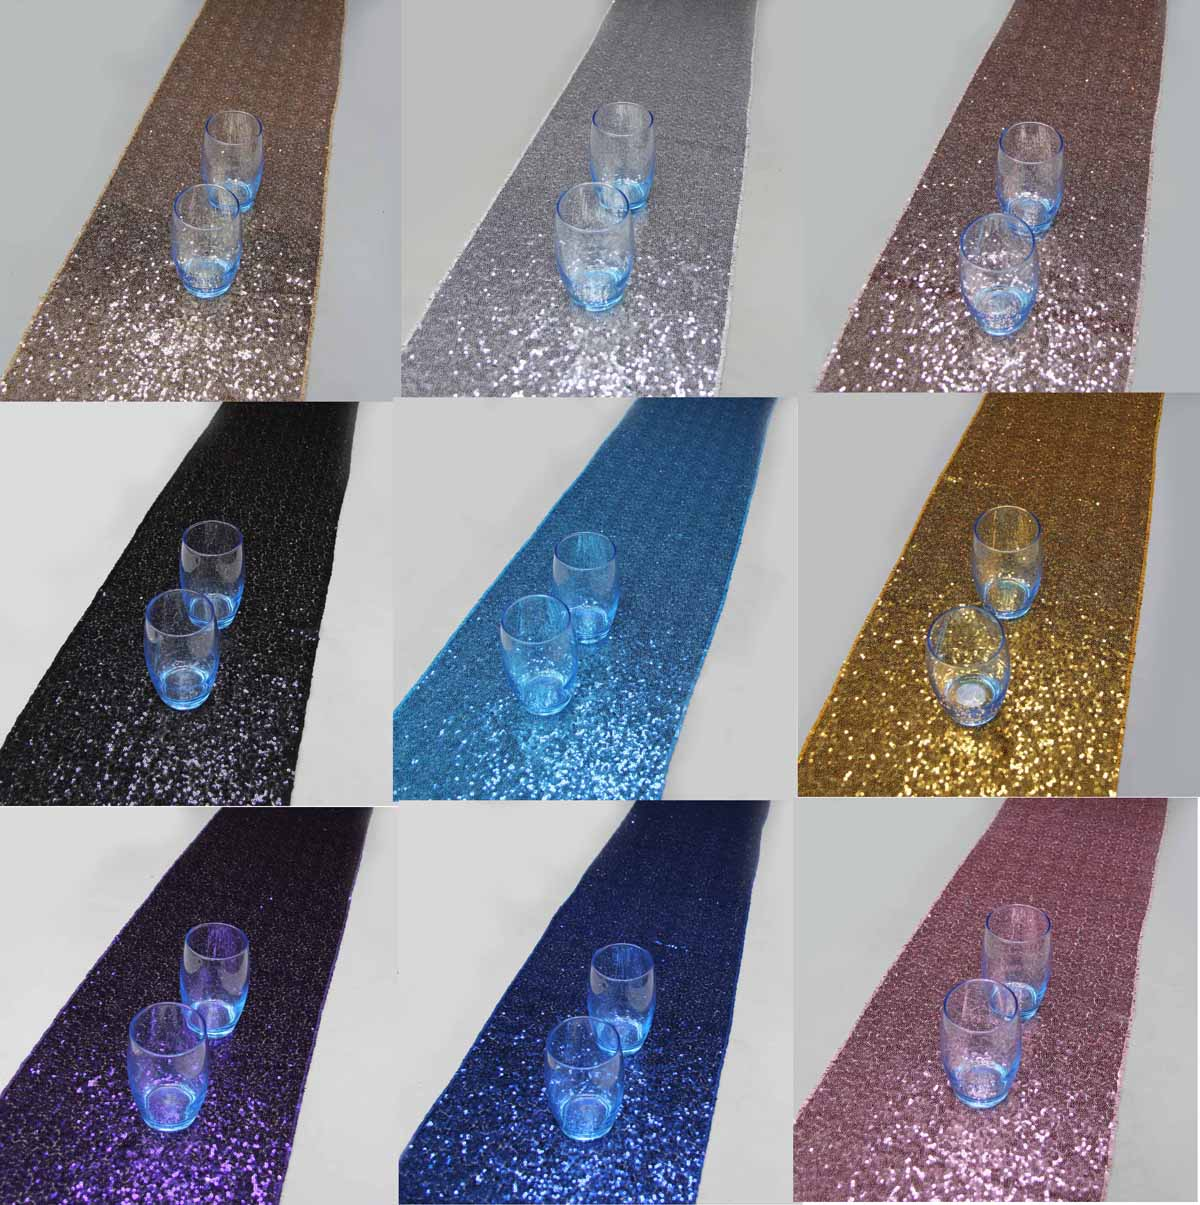 10 Pieces 30cmx274cm(12*108) Luxury Gold Sequin Table Runner Wedding Party Table Decoration Solid Color Gold Table Runners